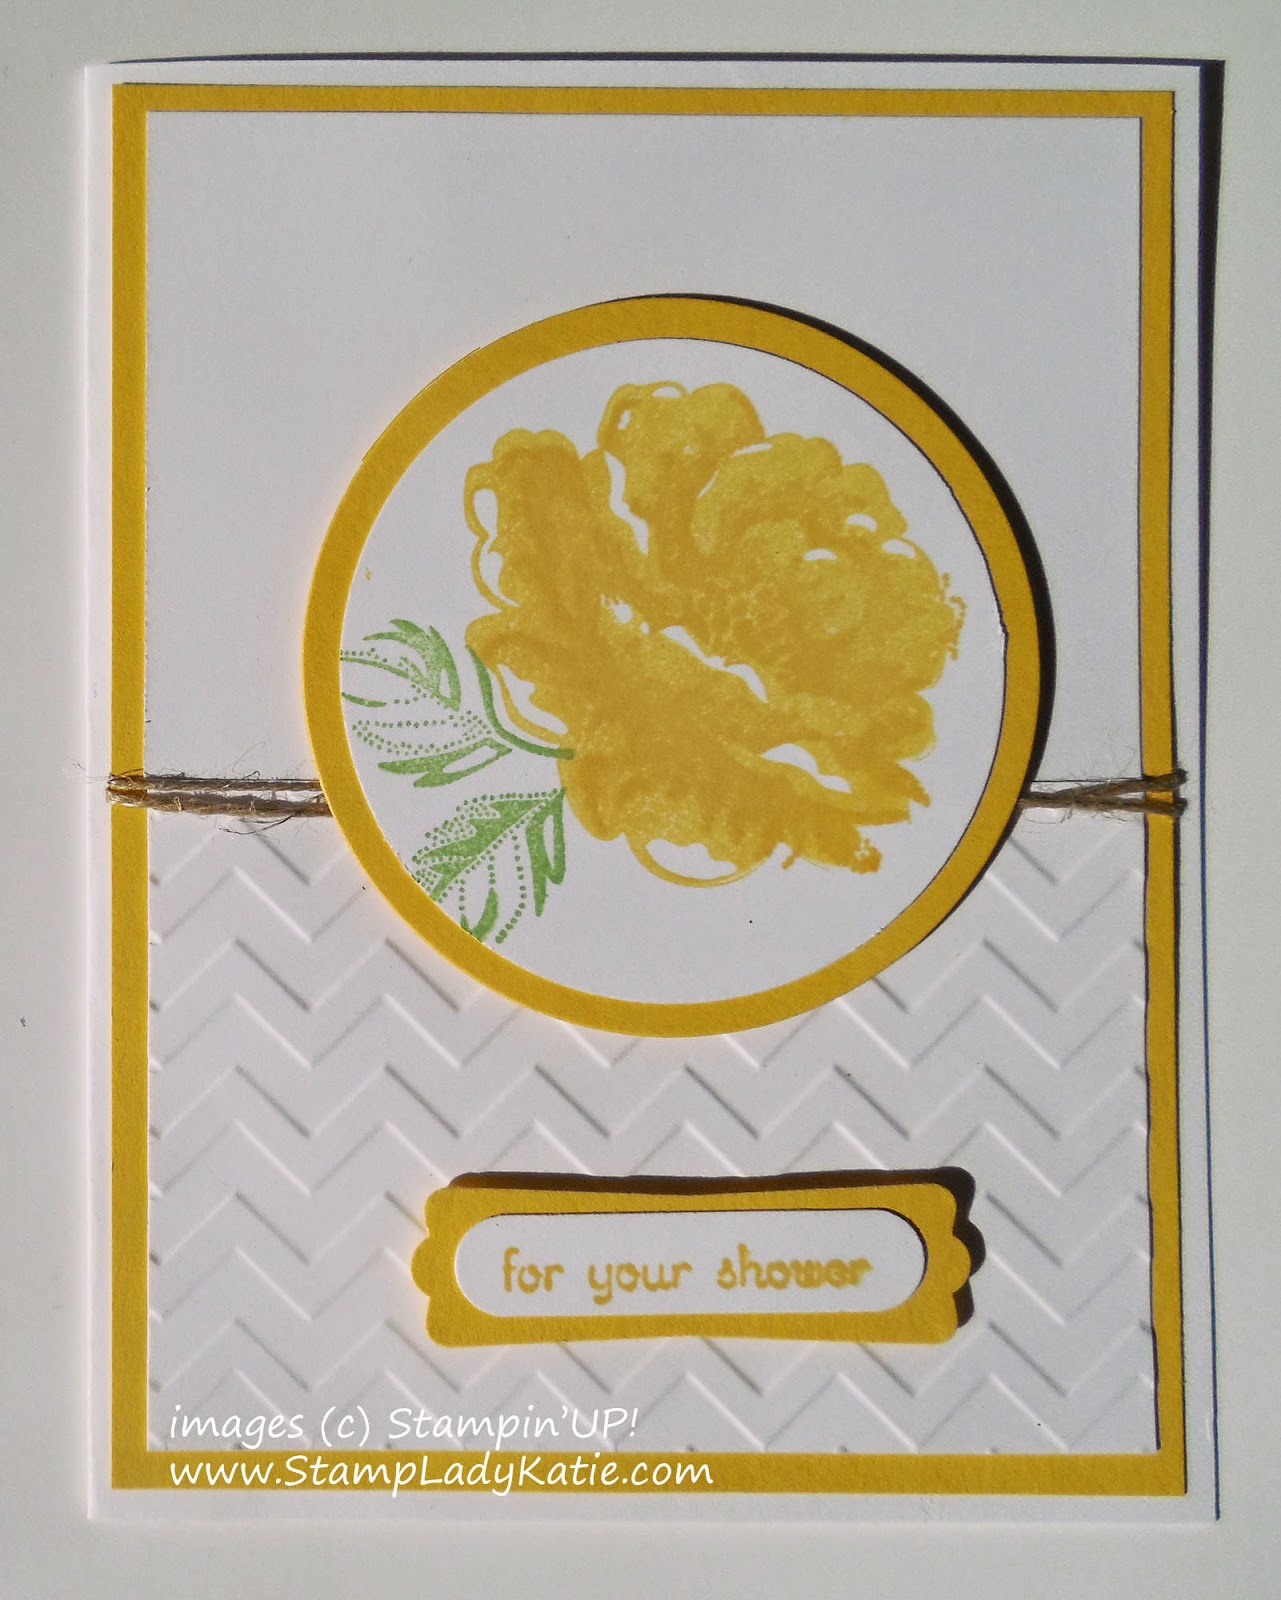 Card made with Stampin'UP!'s Stippled Blossom Stamp Set